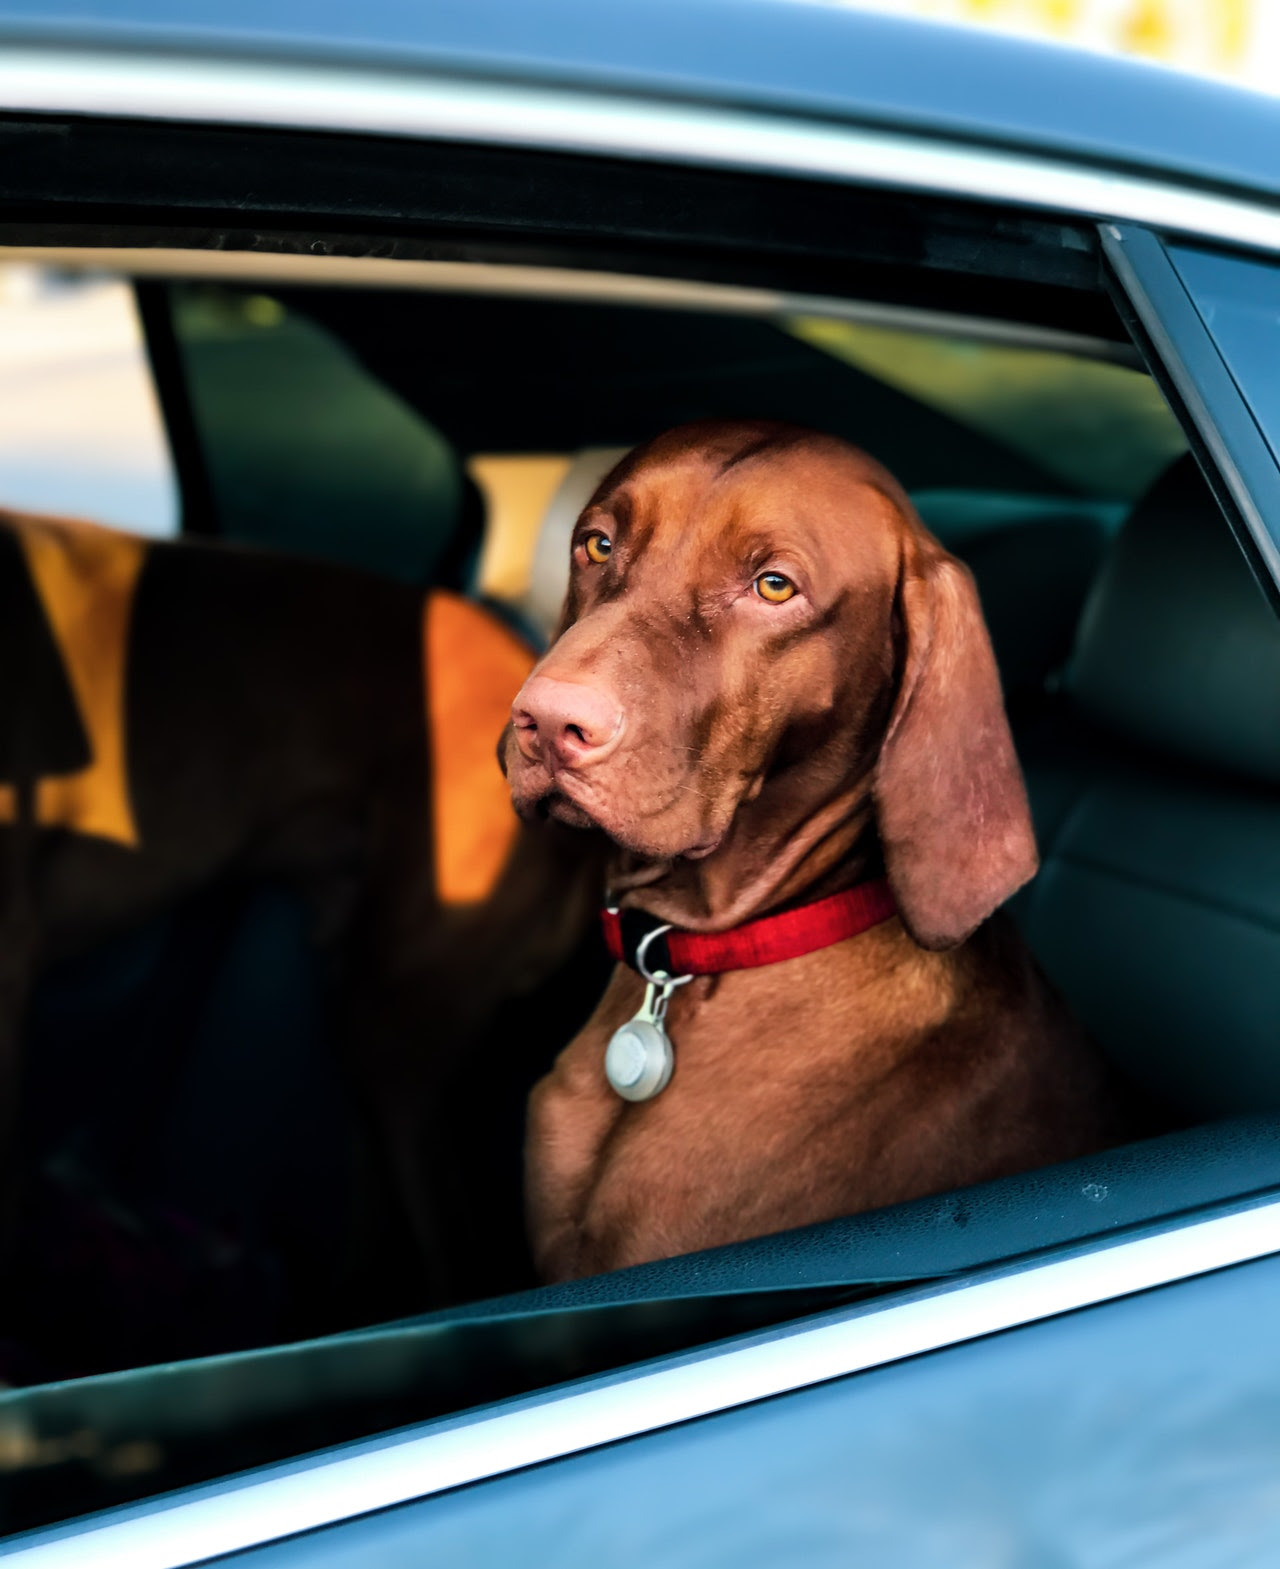 dog looking out window. Car safety post